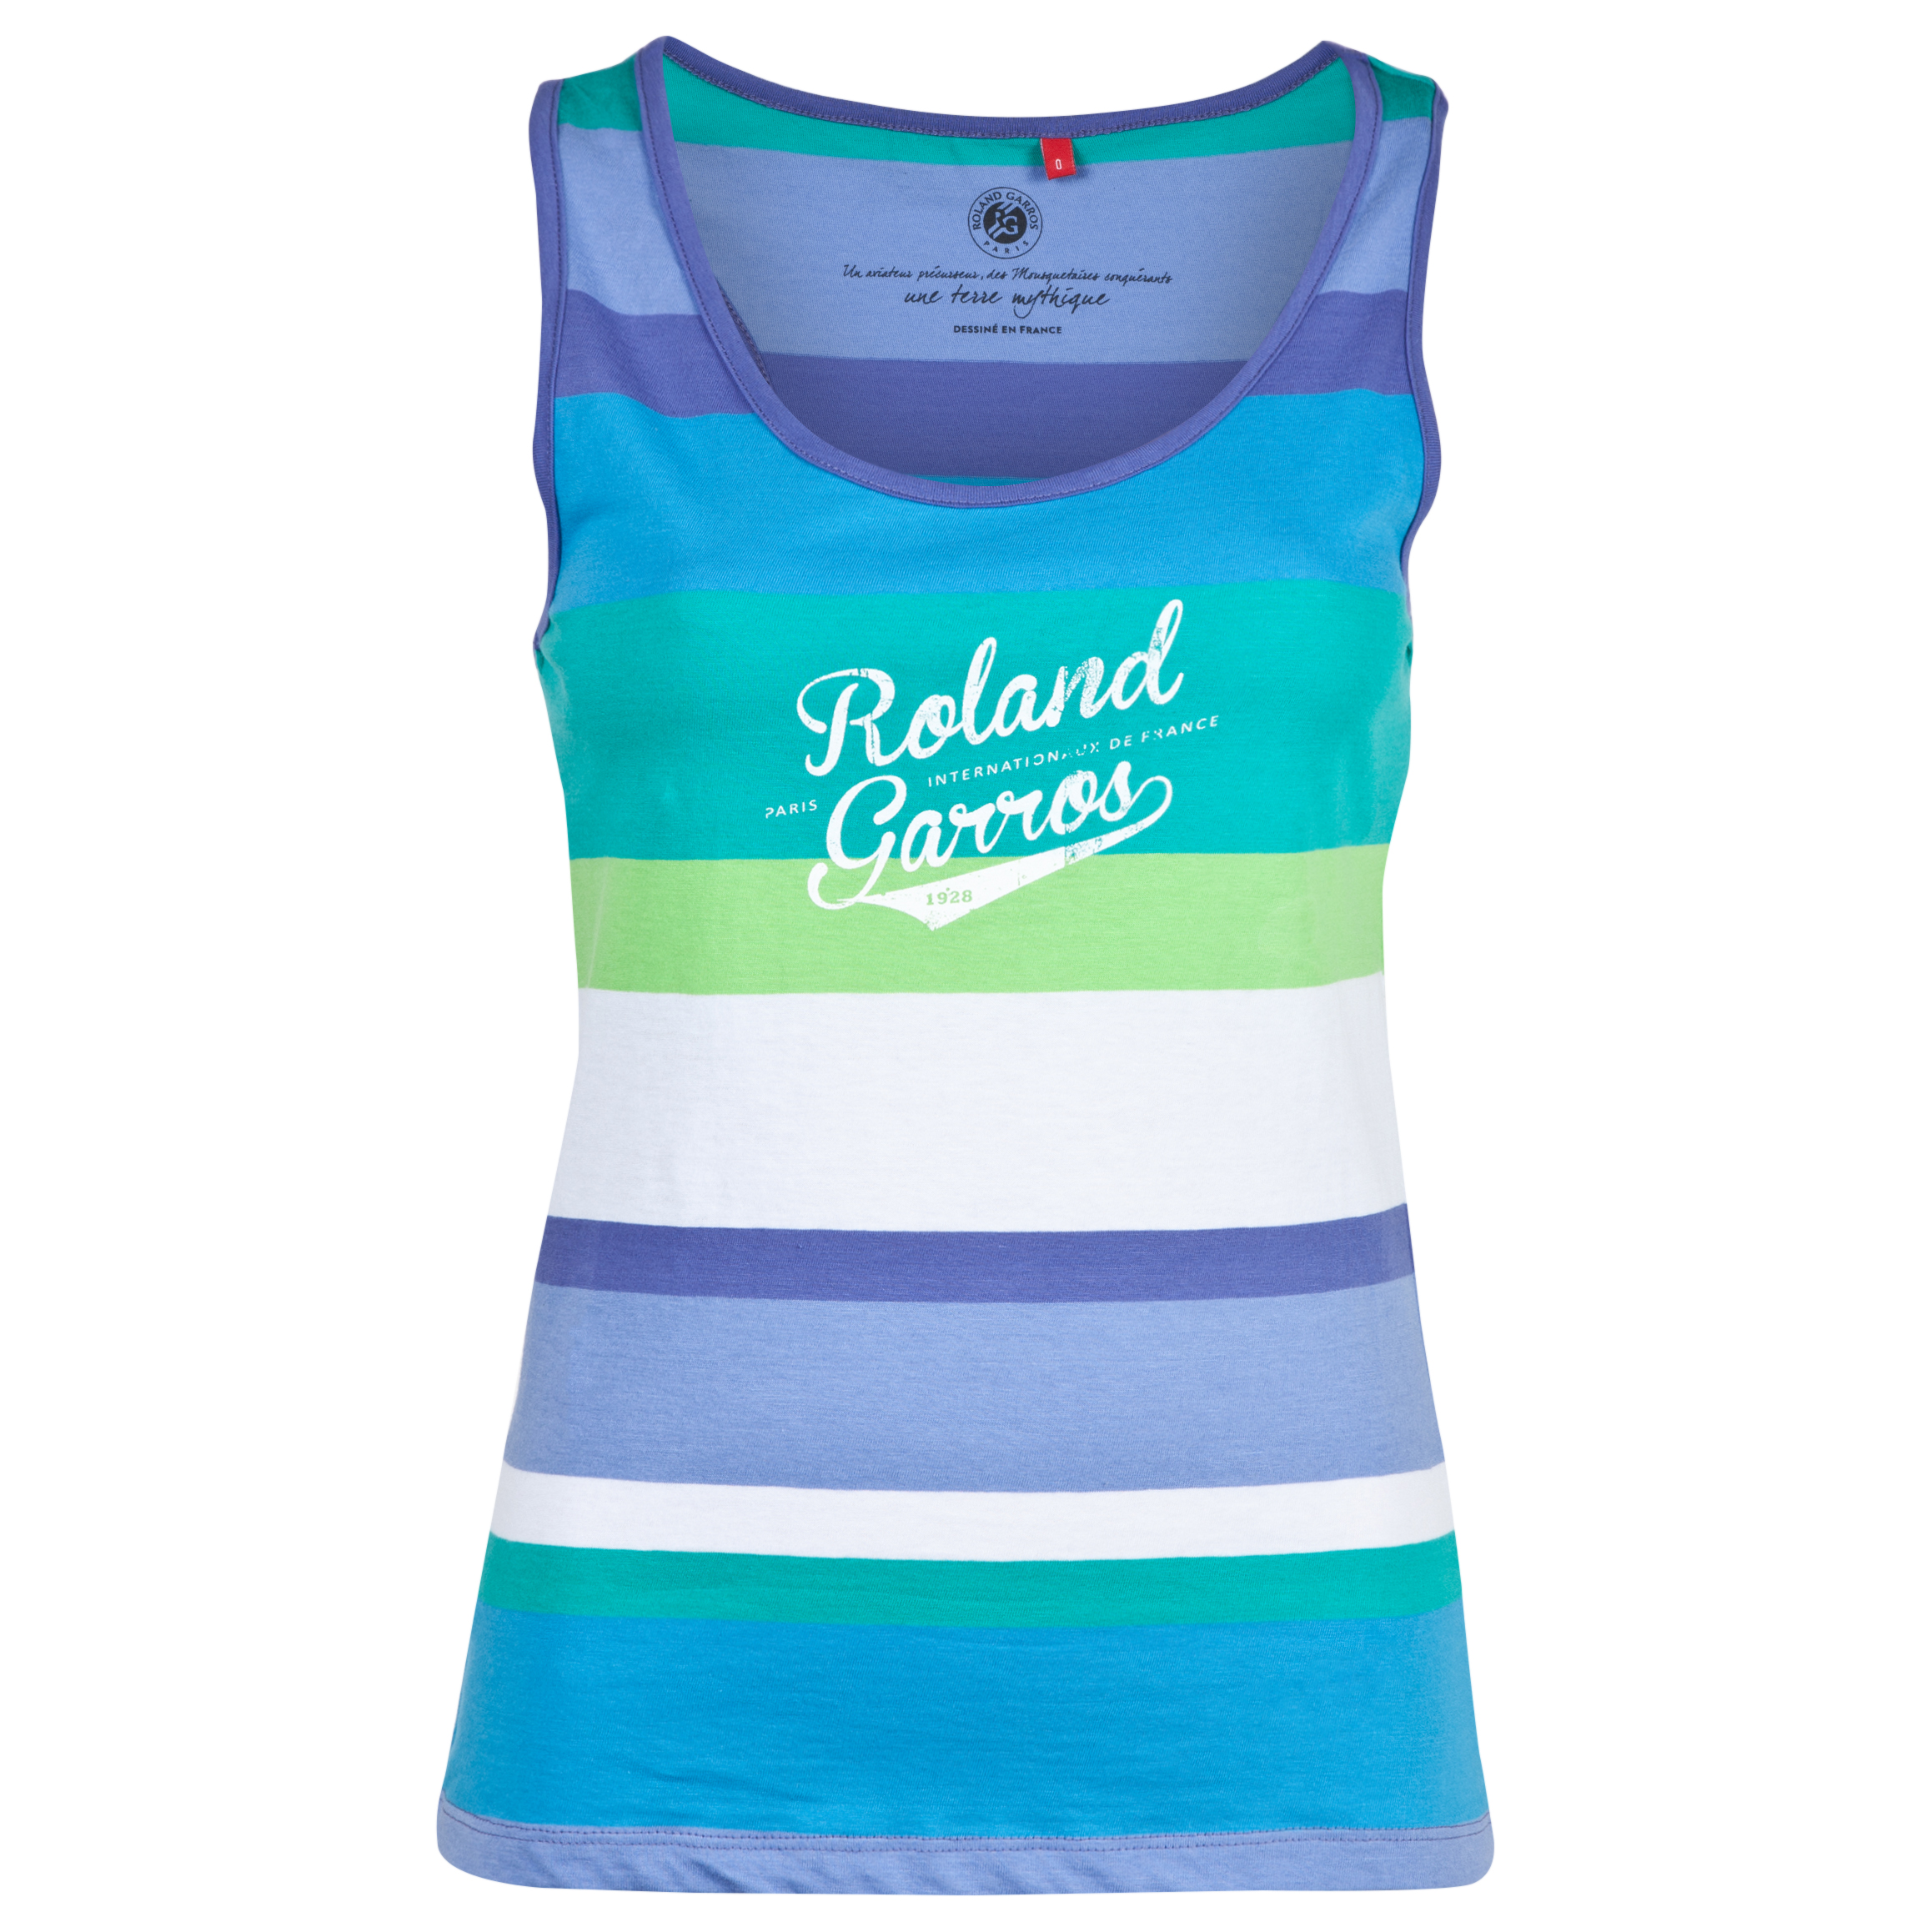 Roland-Garros Batatias Striped Vest - Womens Blue